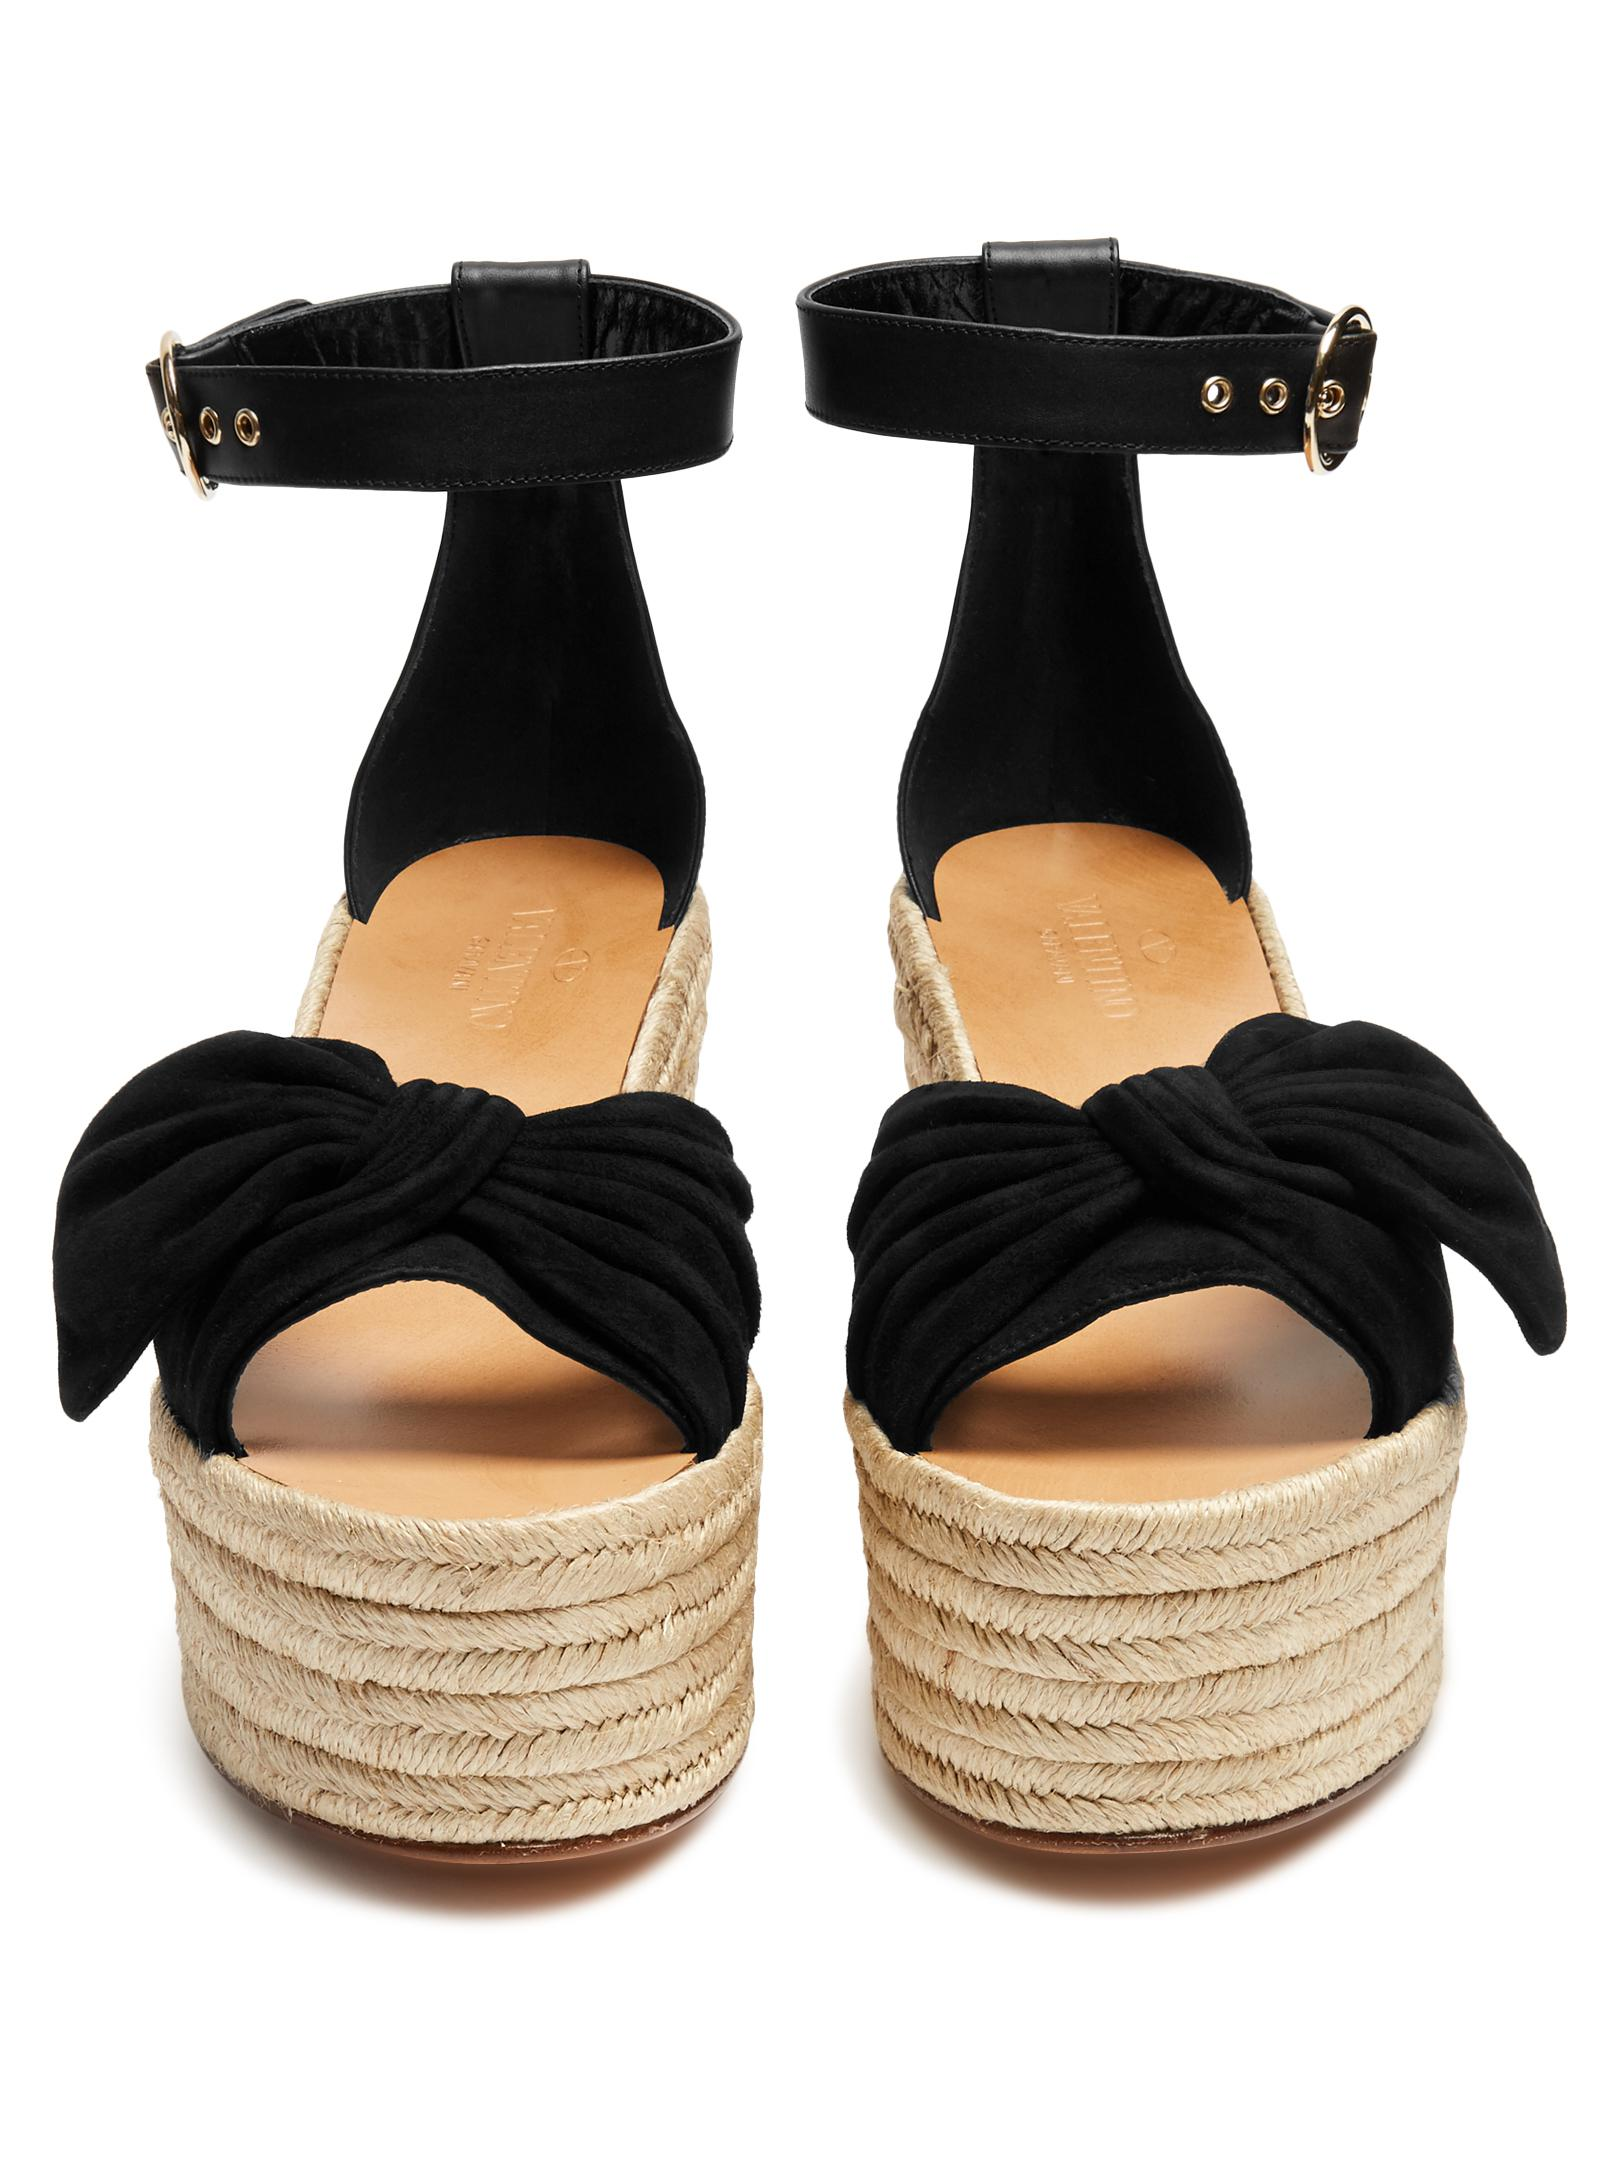 28ca3e225a Gallery. Previously sold at: MATCHESFASHION.COM · Women's Valentino Bow